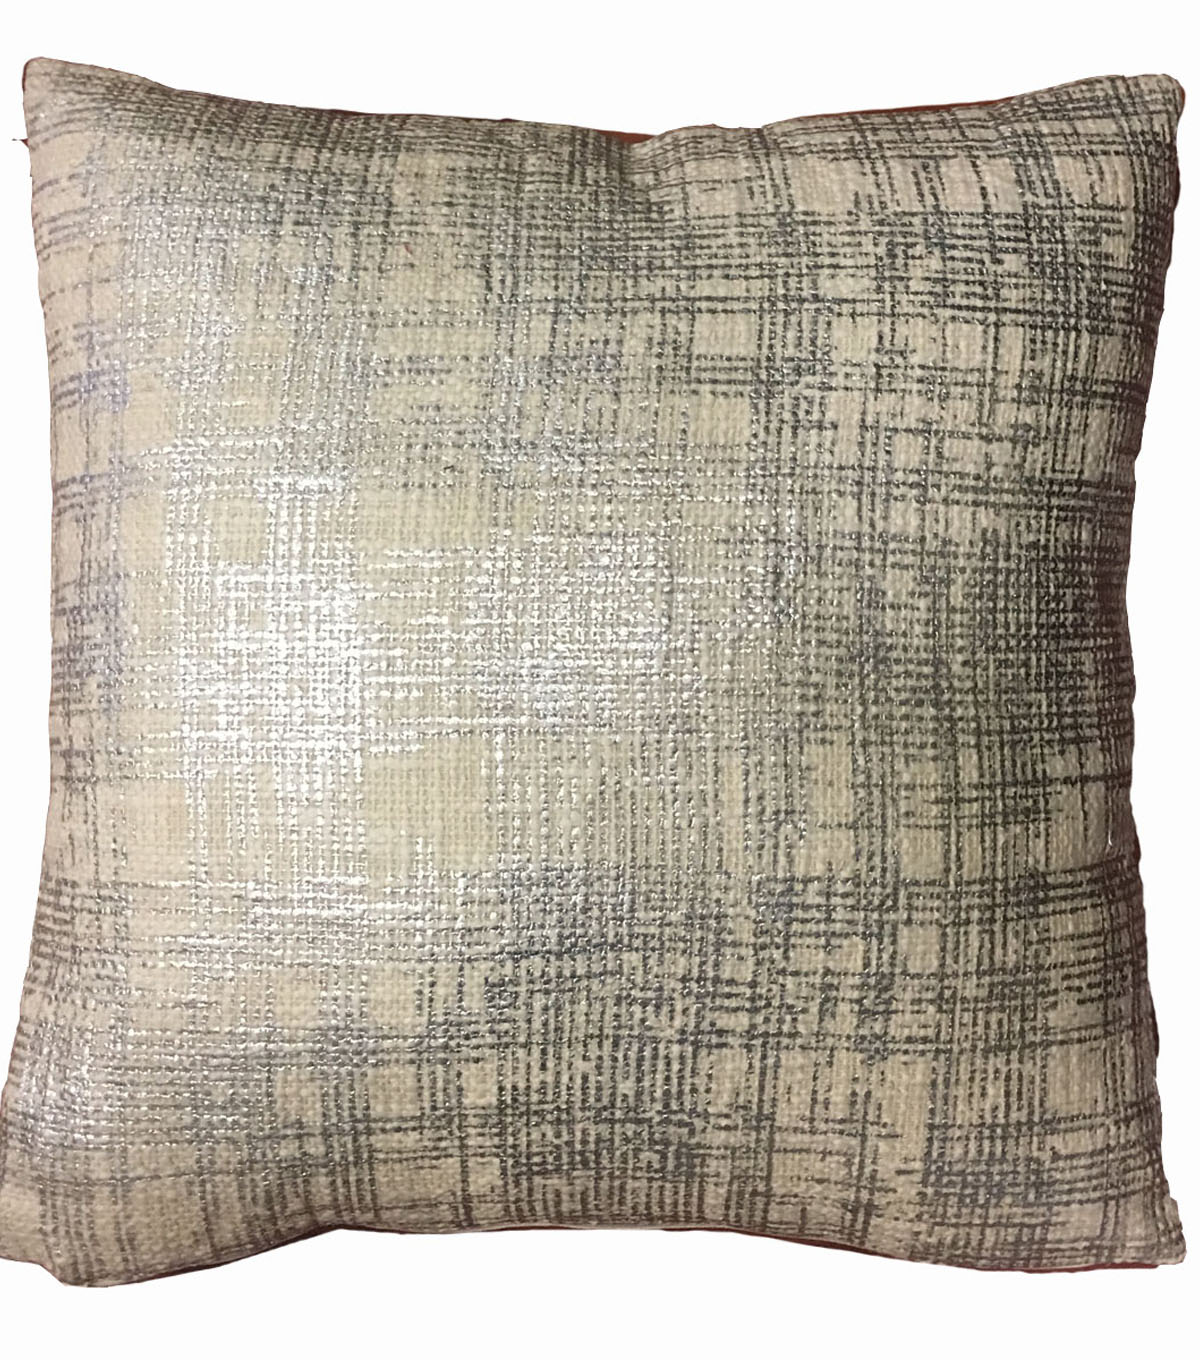 Foil Printed Pillow-Silver